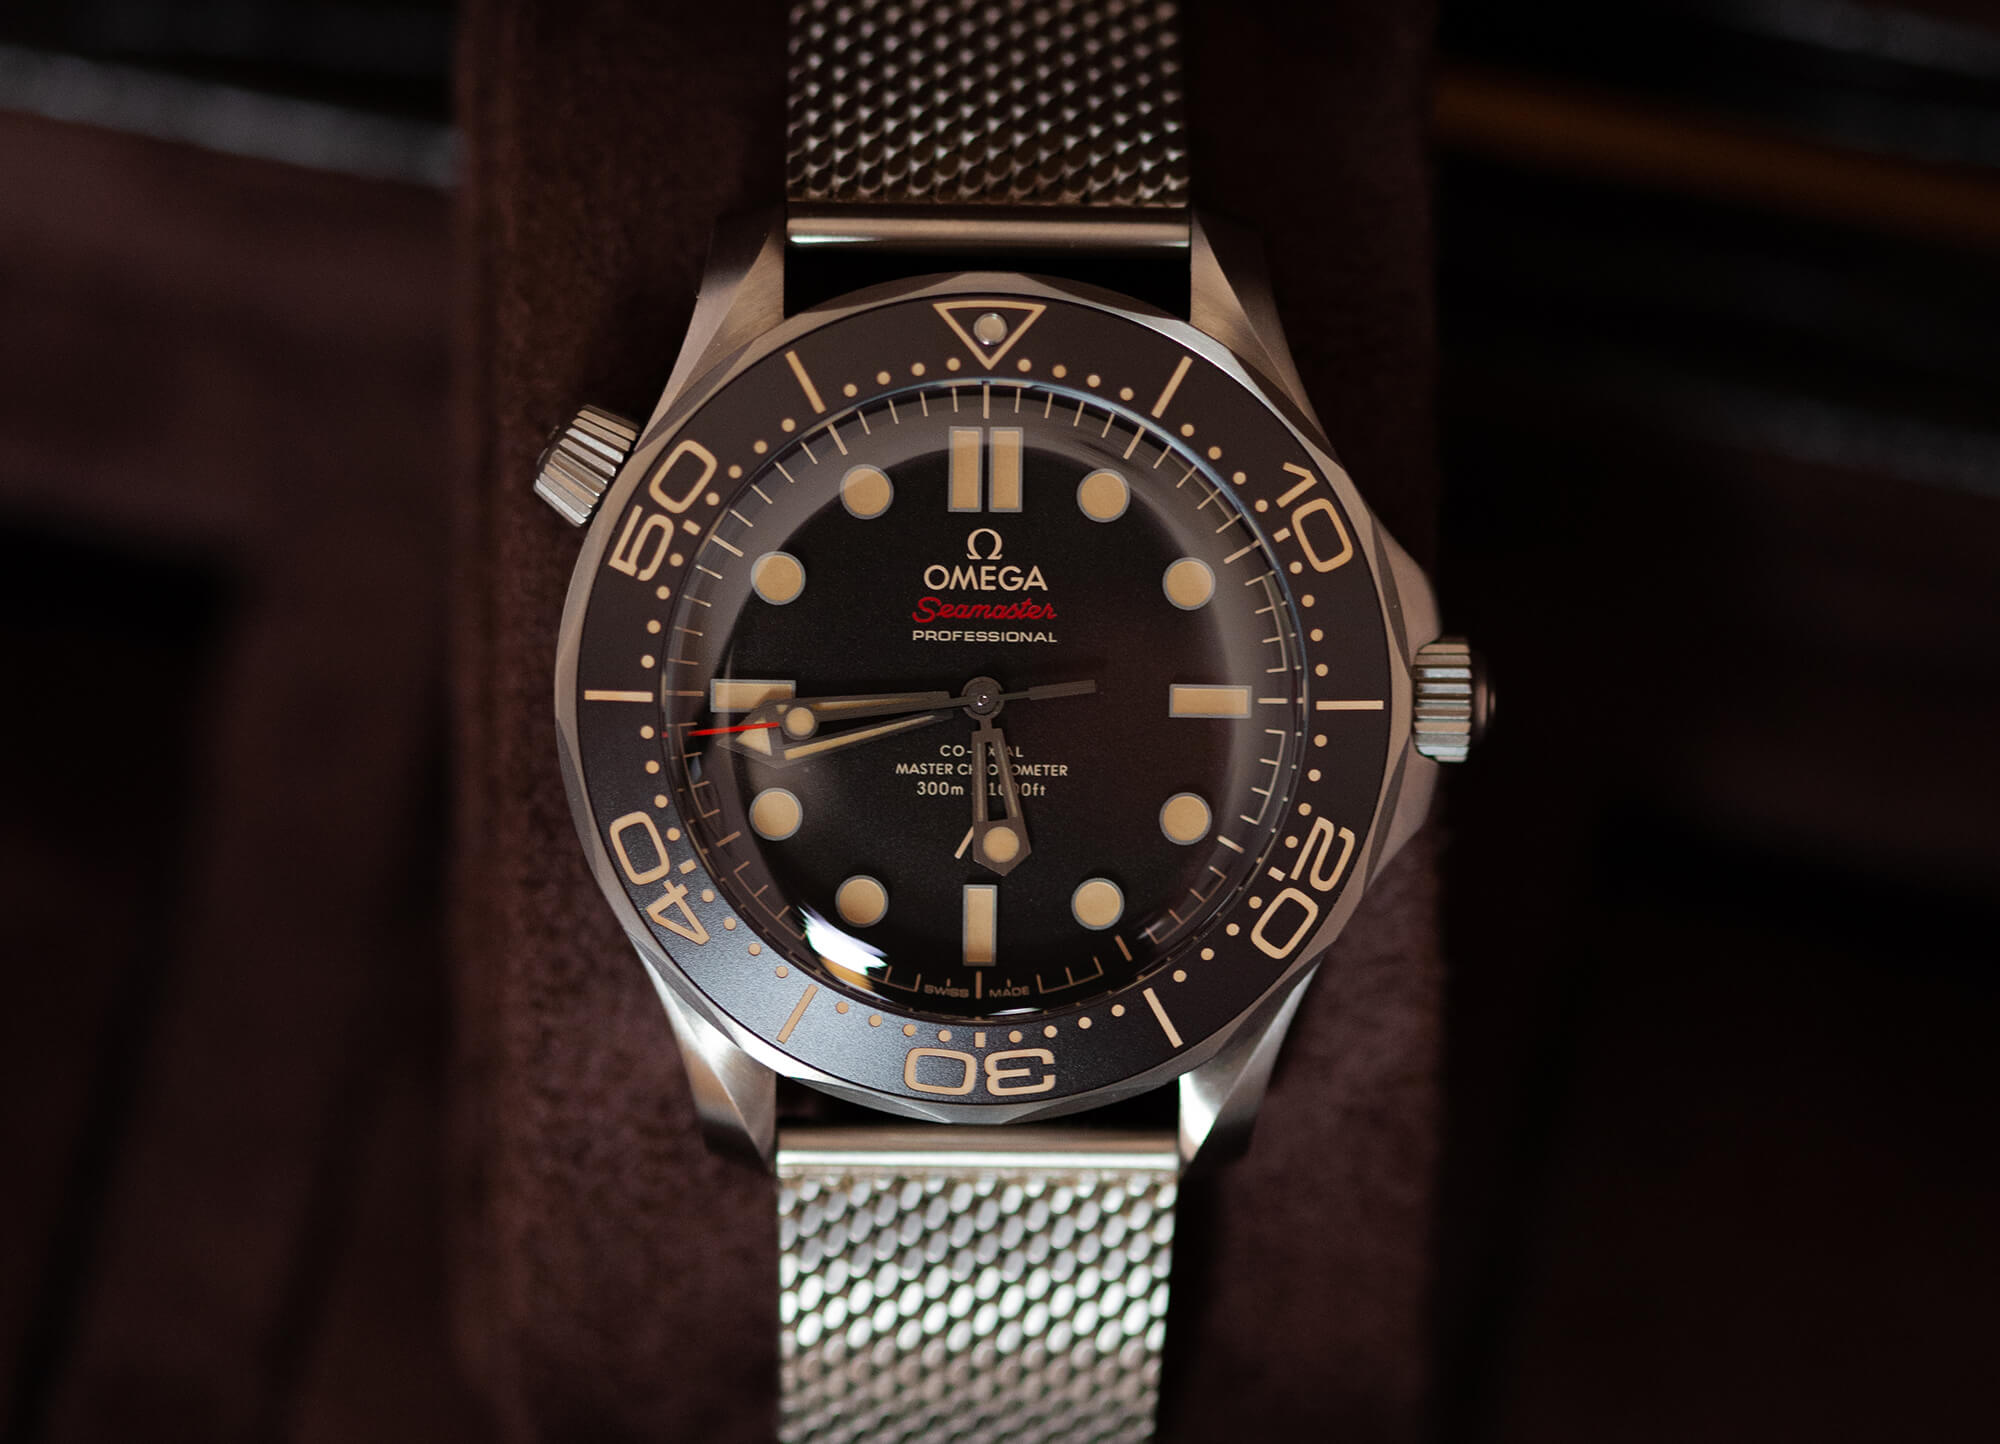 """Omega Seamaster Diver 300M 007 """"No Time to Die"""" Edition Watch Review -  Oracle Time"""